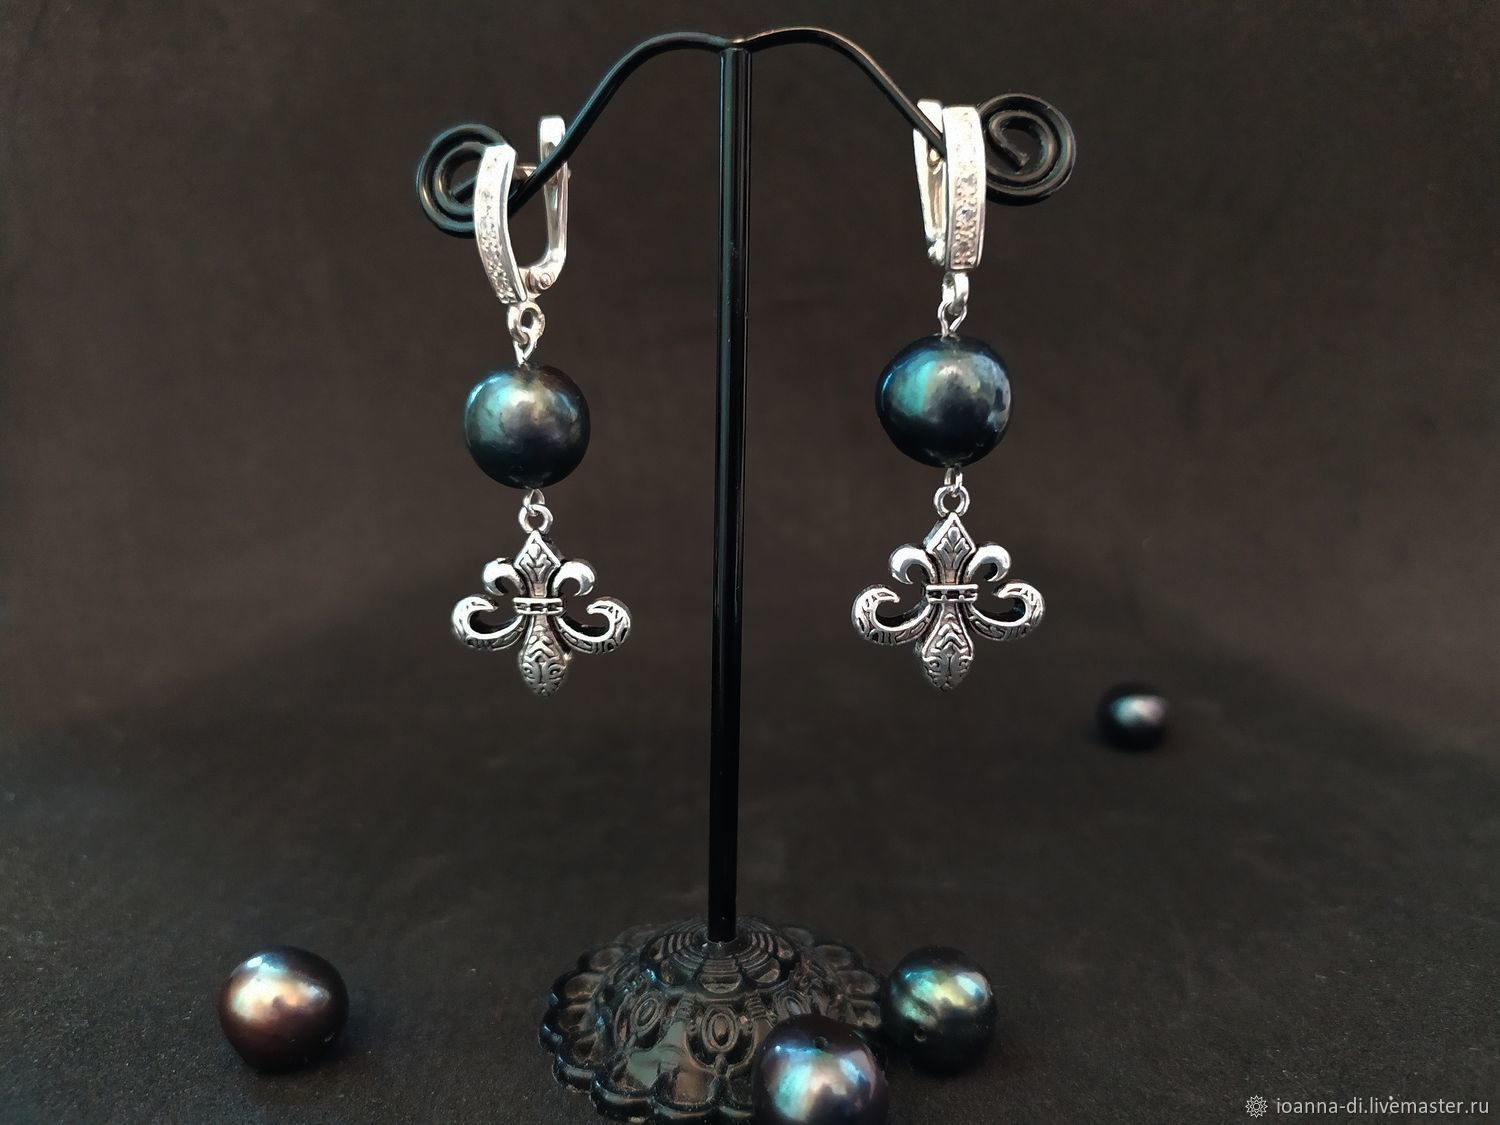 VIP earrings silver with pearls, Earrings, Moscow,  Фото №1